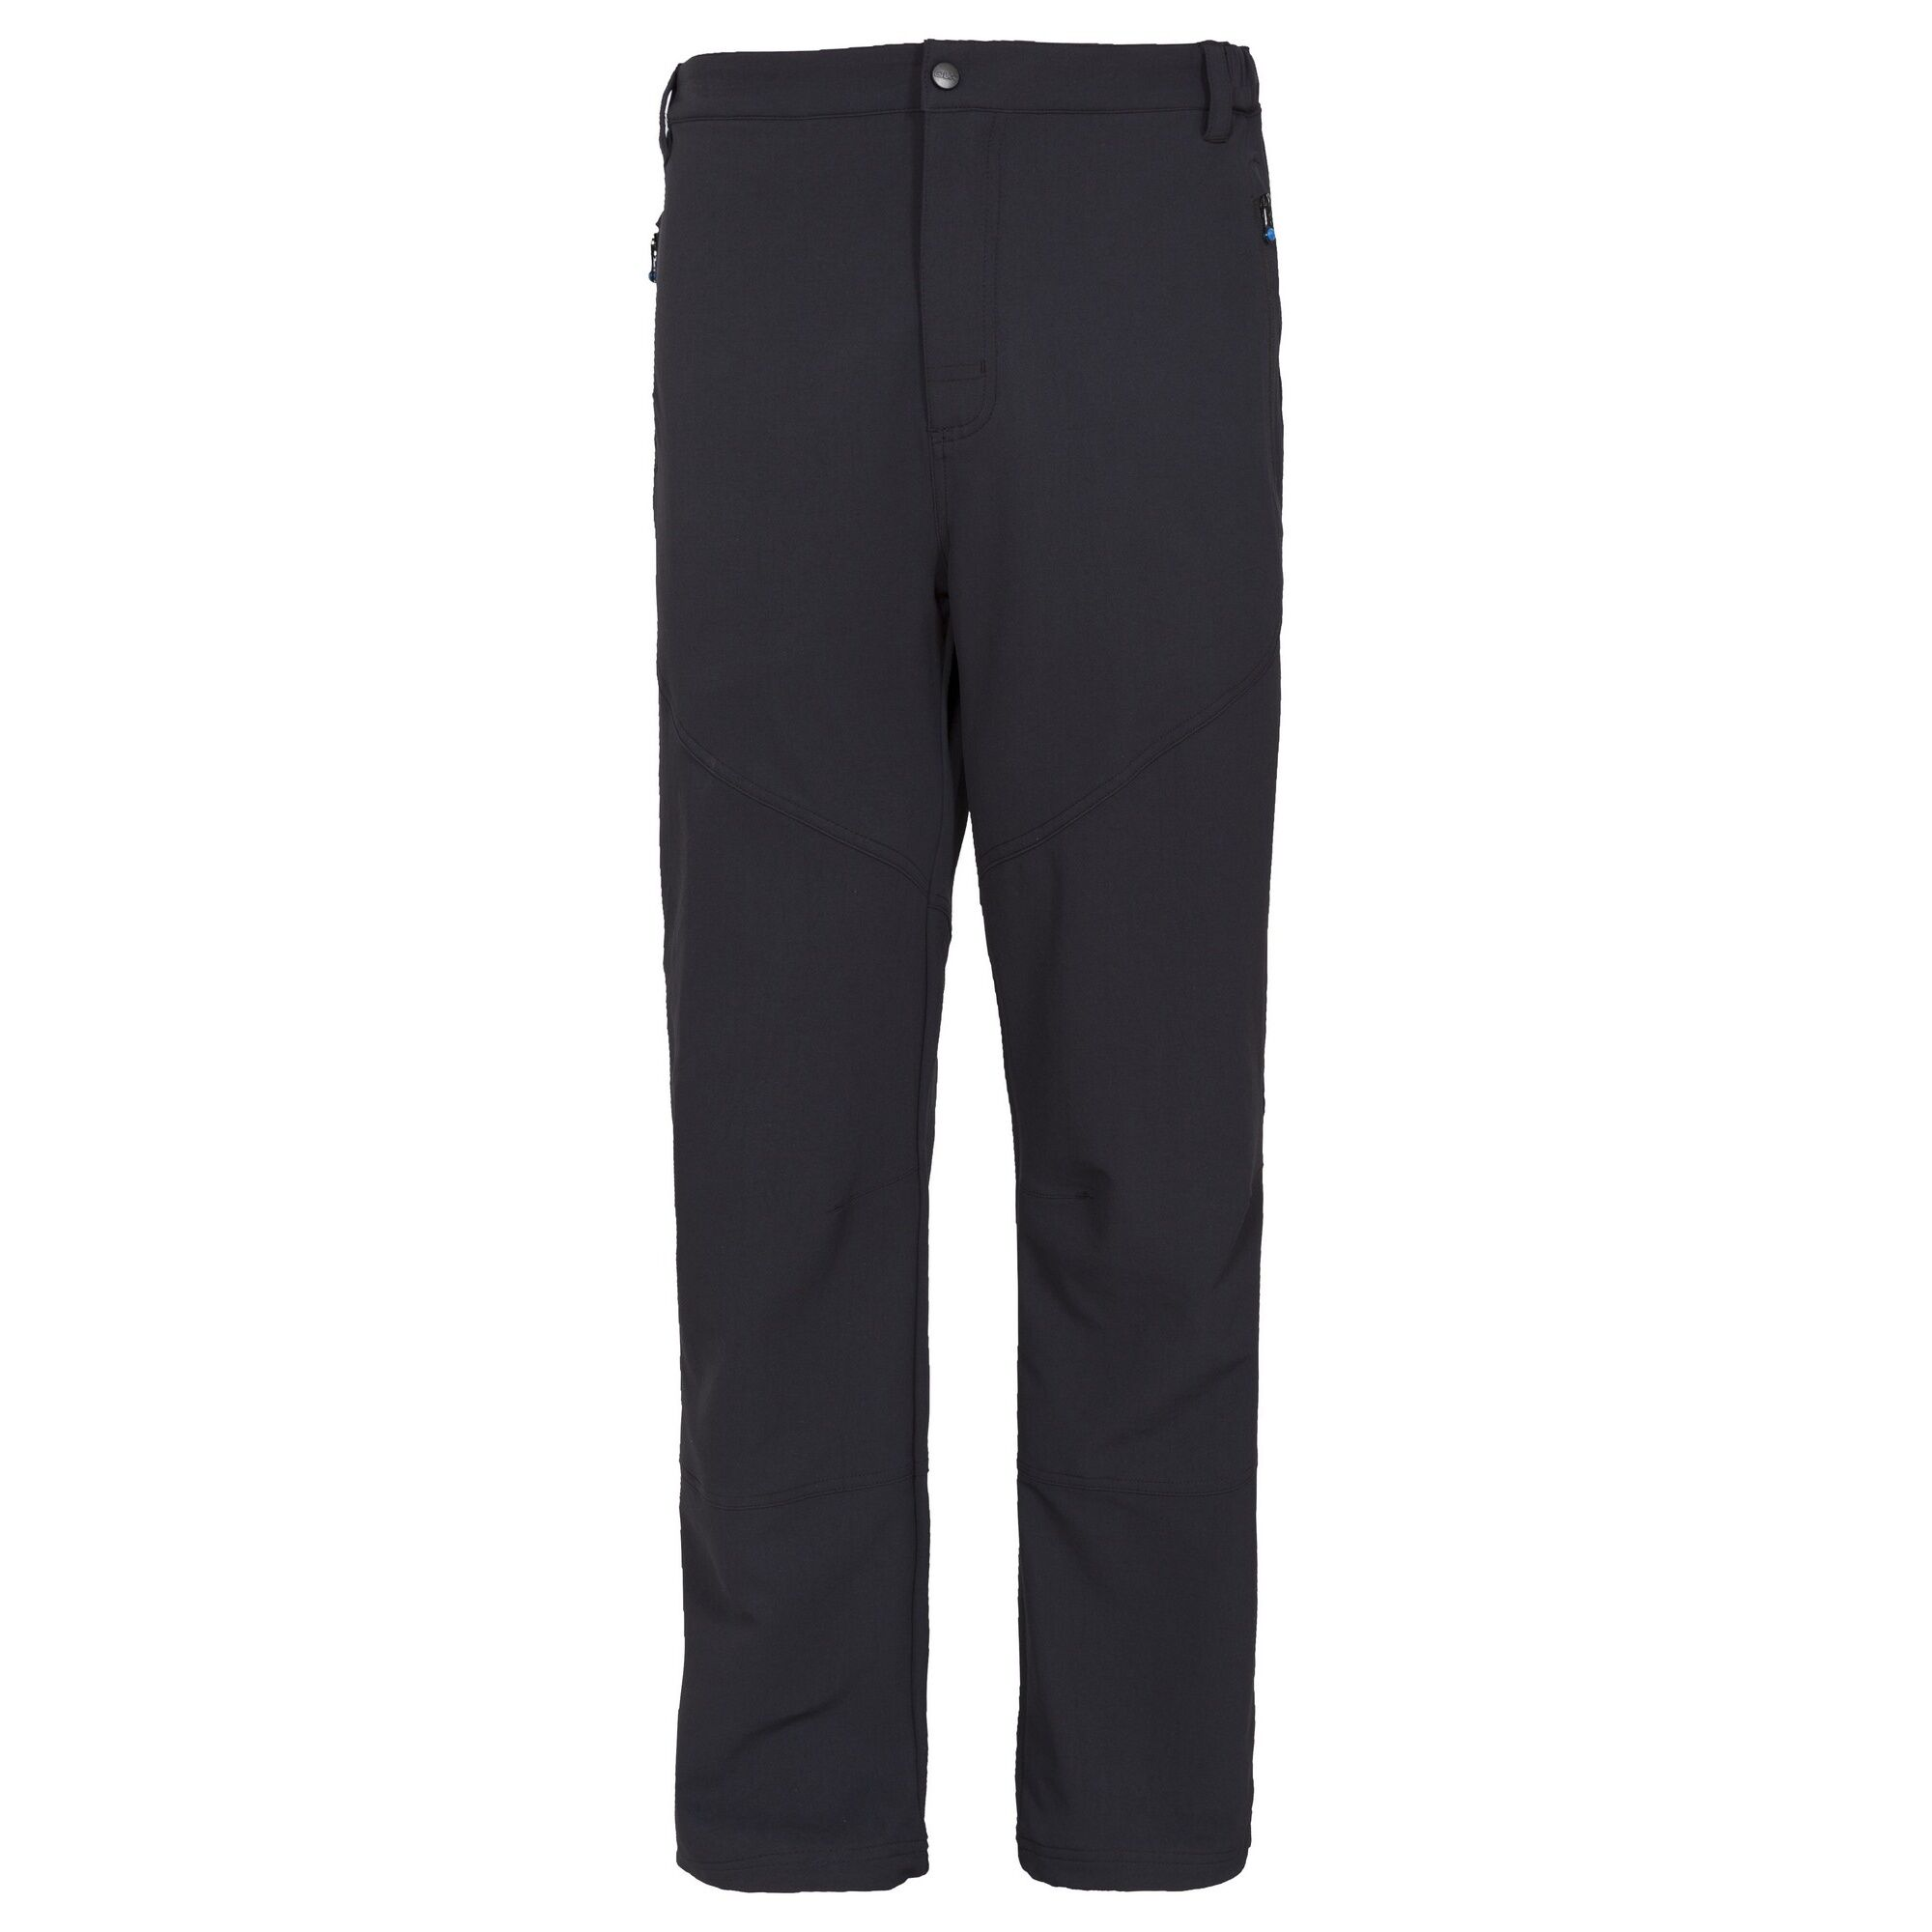 Trespass Canyon - Pantalon - Homme (Noir) - UTTP3450